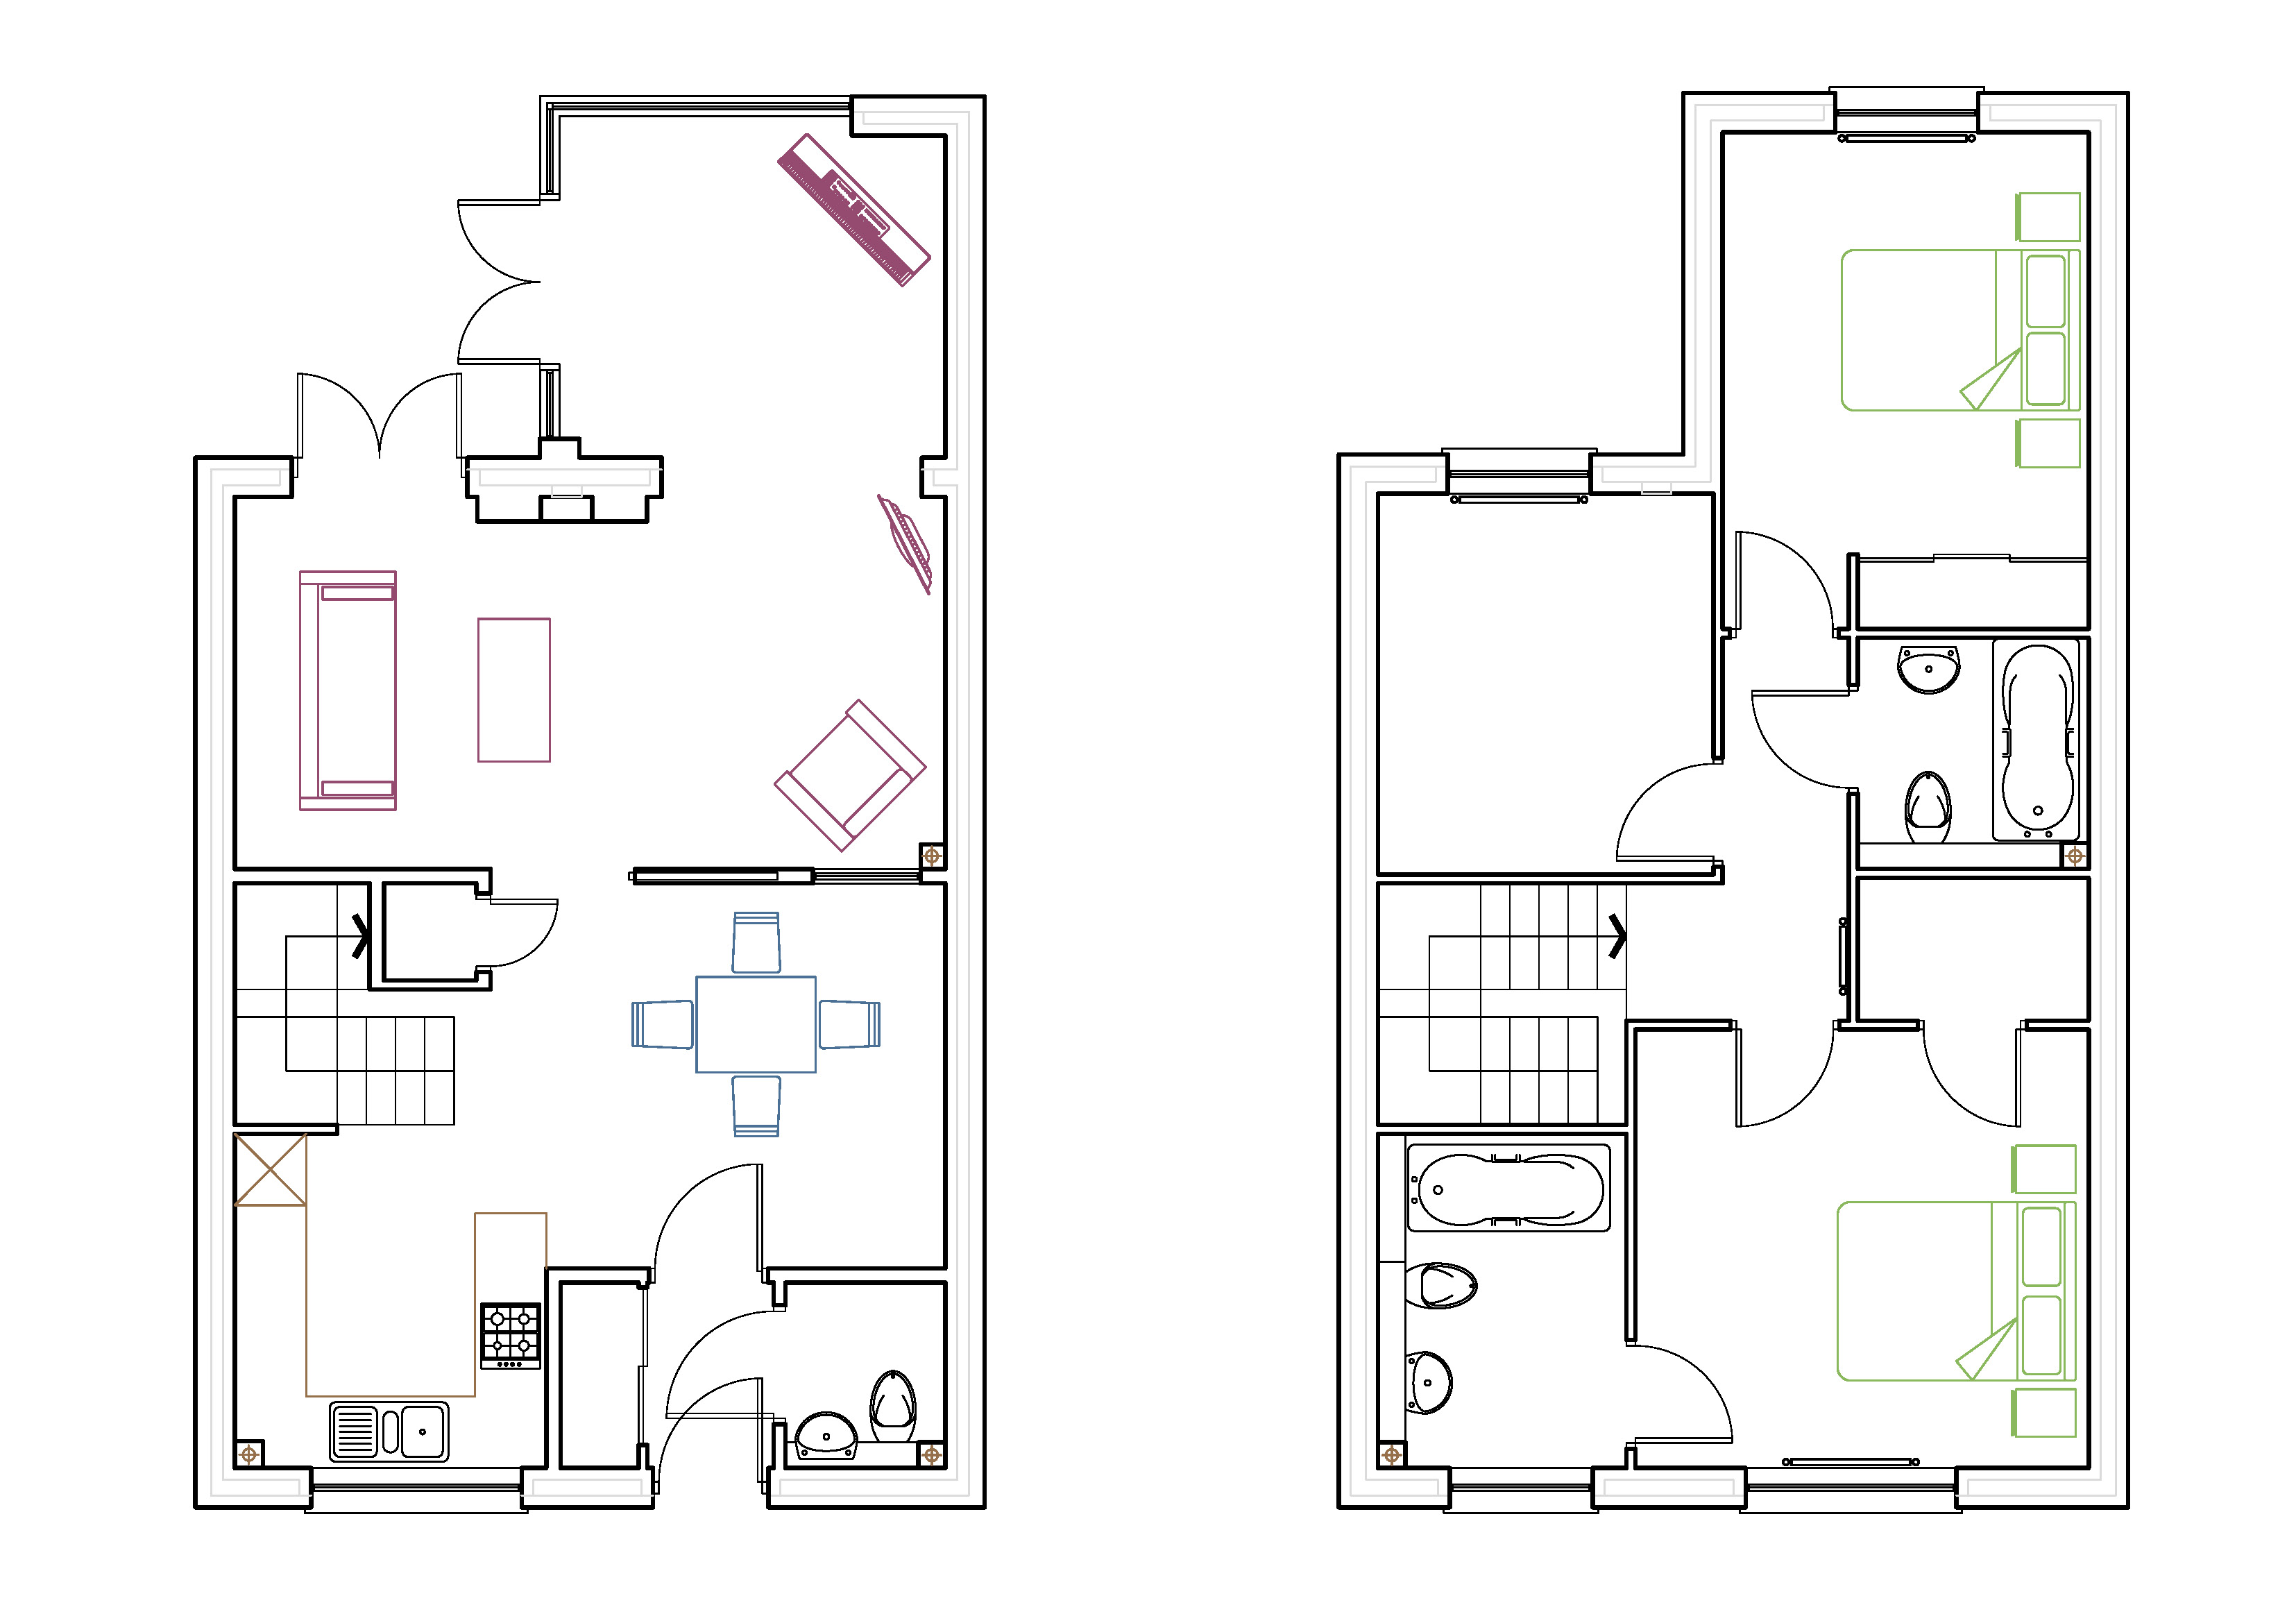 Cad Creations Website Floorplans